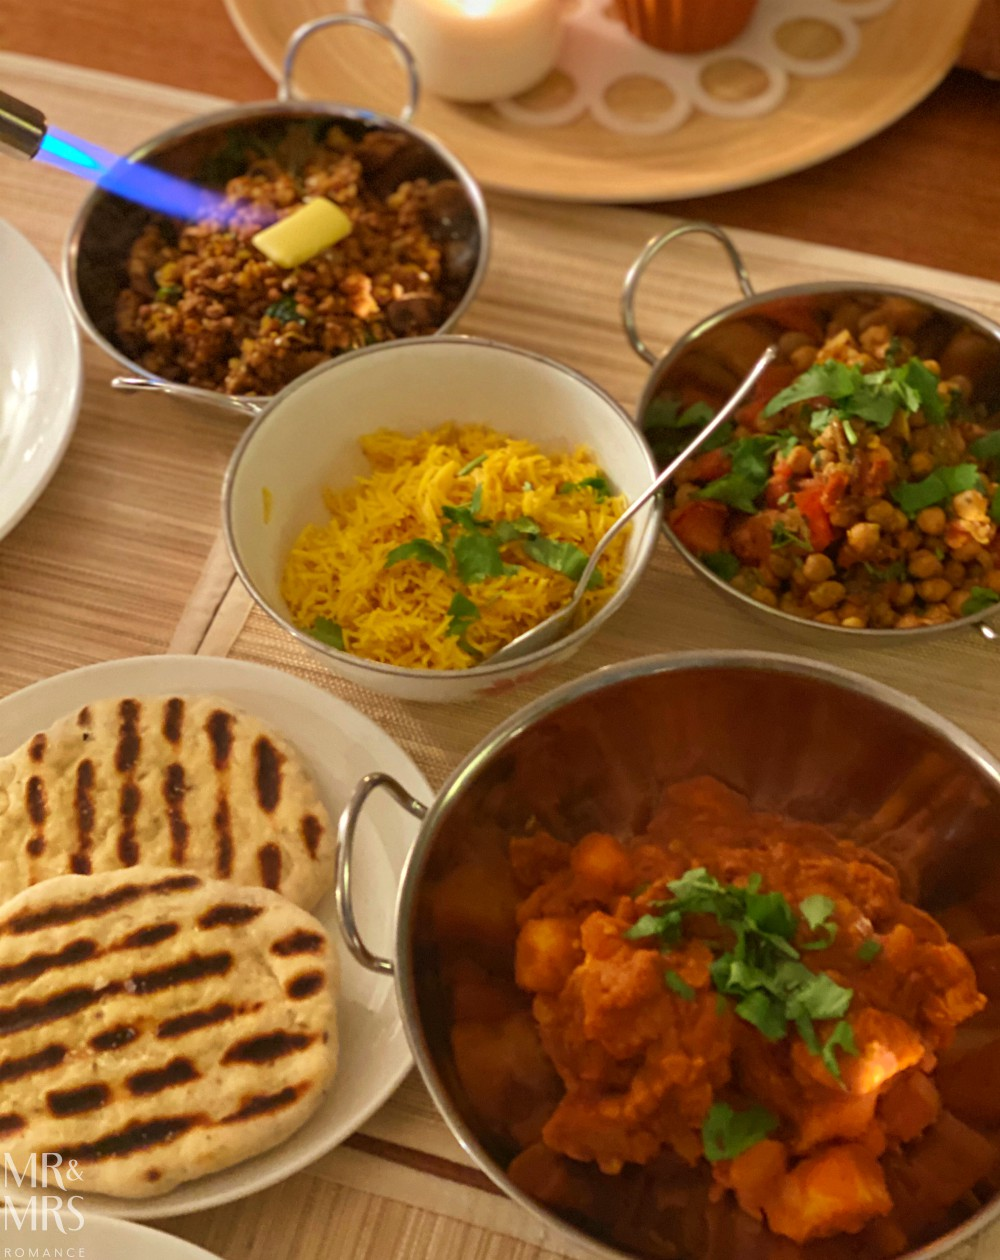 Saag tarka dhal or tarka dal - with other curries